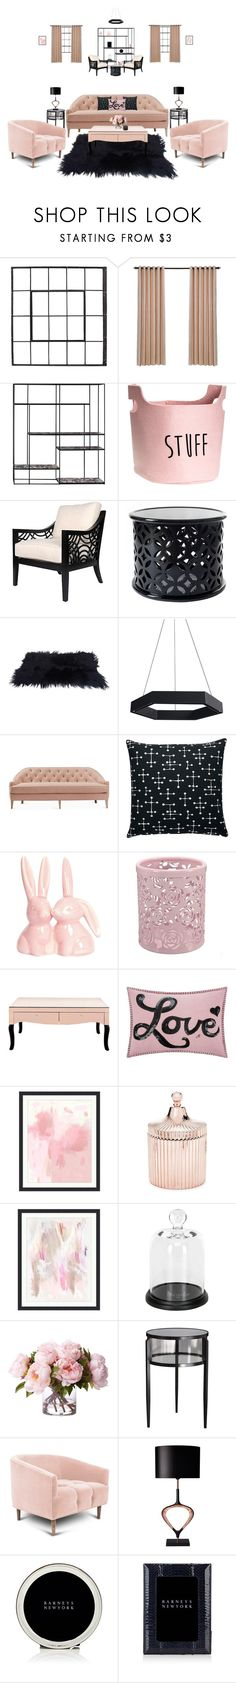 """""""⚫"""" by bri-grim ❤ liked on Polyvore featuring interior, interiors, interior design, home, home decor, interior decorating, David Francis Furniture, Vitra, Jan Constantine and Pottery Barn"""